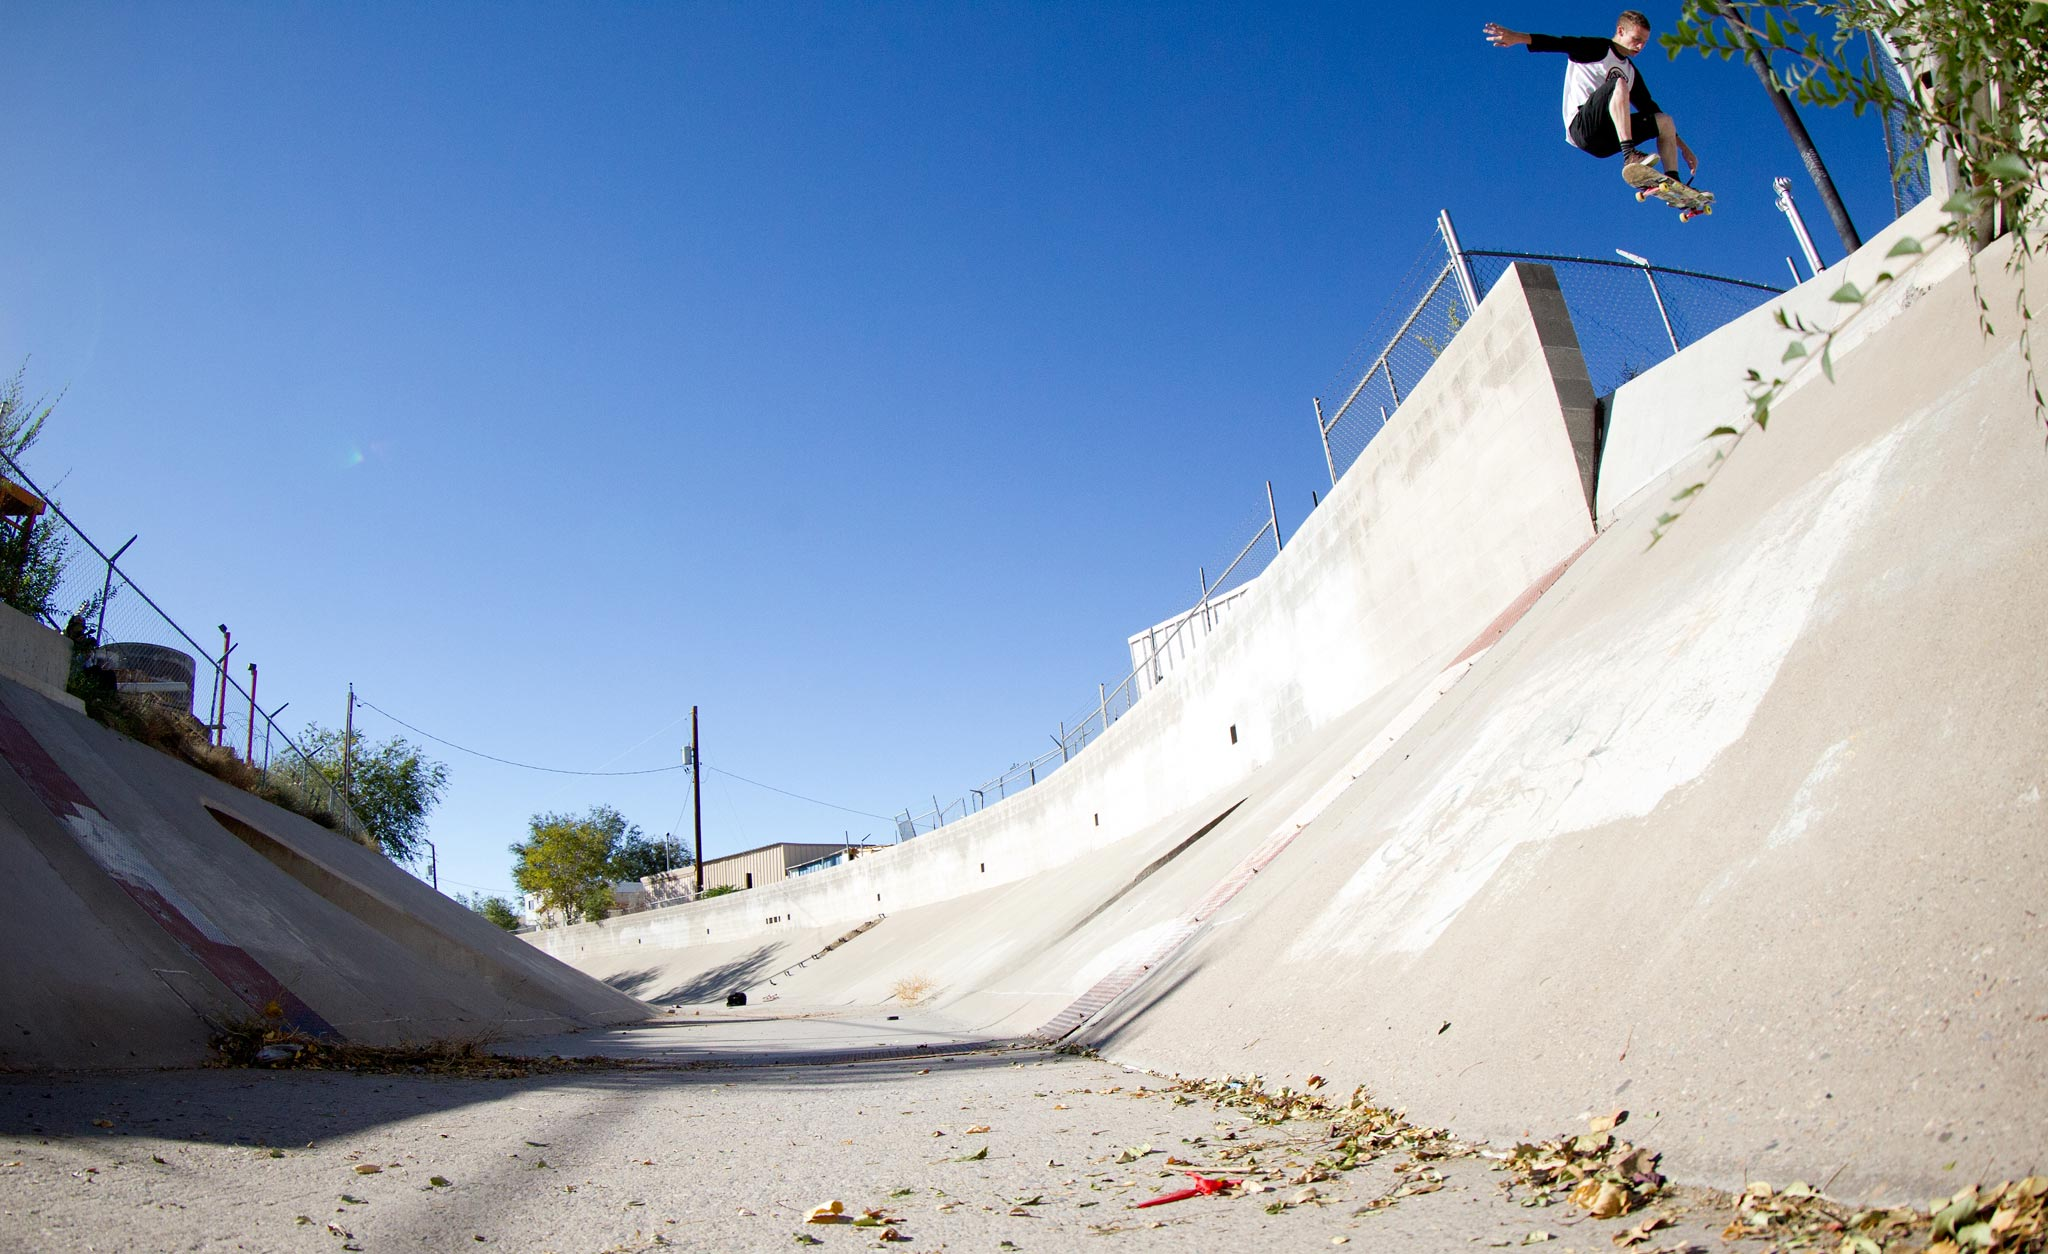 Travis Waller, Switch Ollie